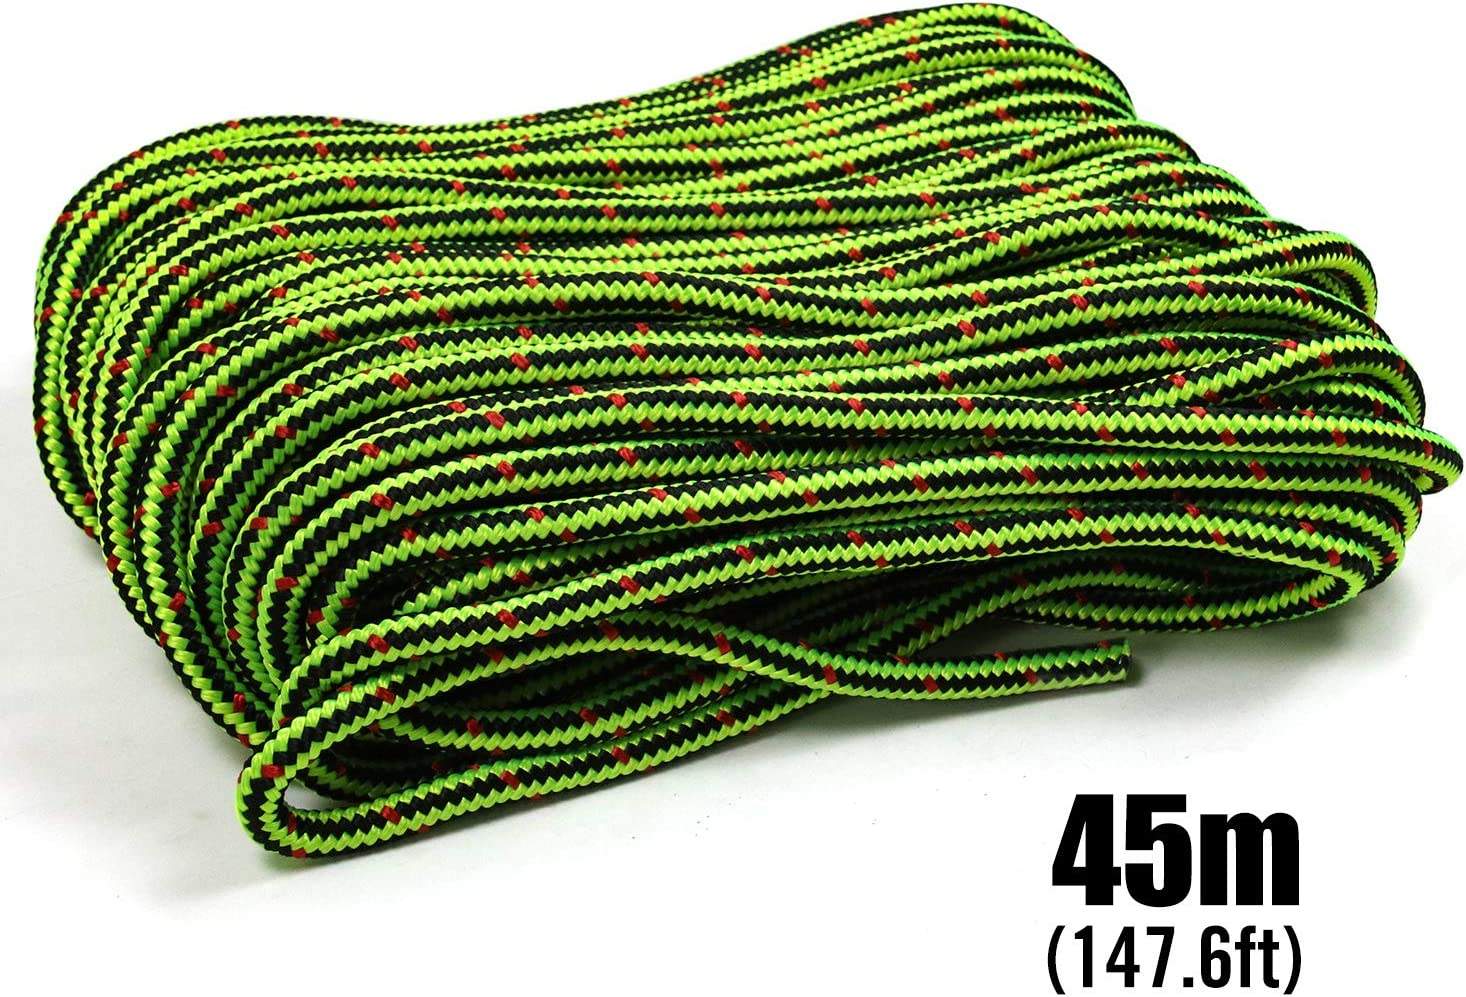 Perantlb 16 Strand Arborist Climbing Rope 2by 150 Black with Green UV Resistant and Weather Resistant Double Braided Boat rope1